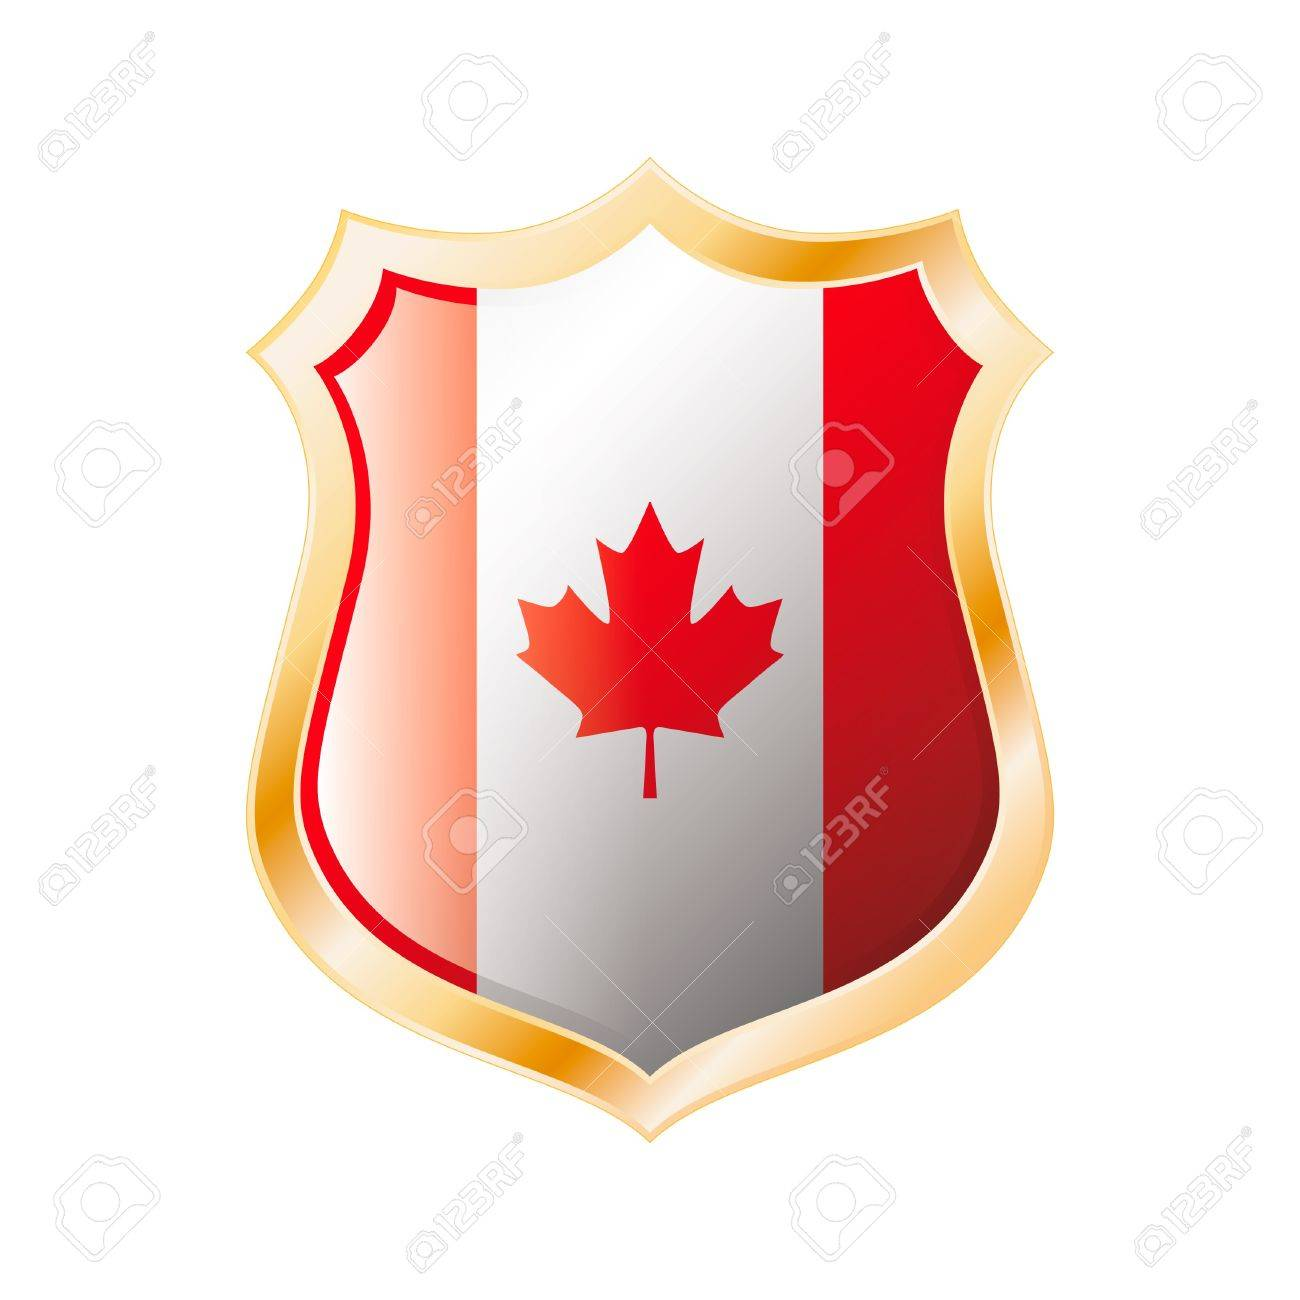 Canada flag on metal shiny shield  illustration. Collection of flags on shield against white background. Abstract isolated object. Stock Photo - 7117633